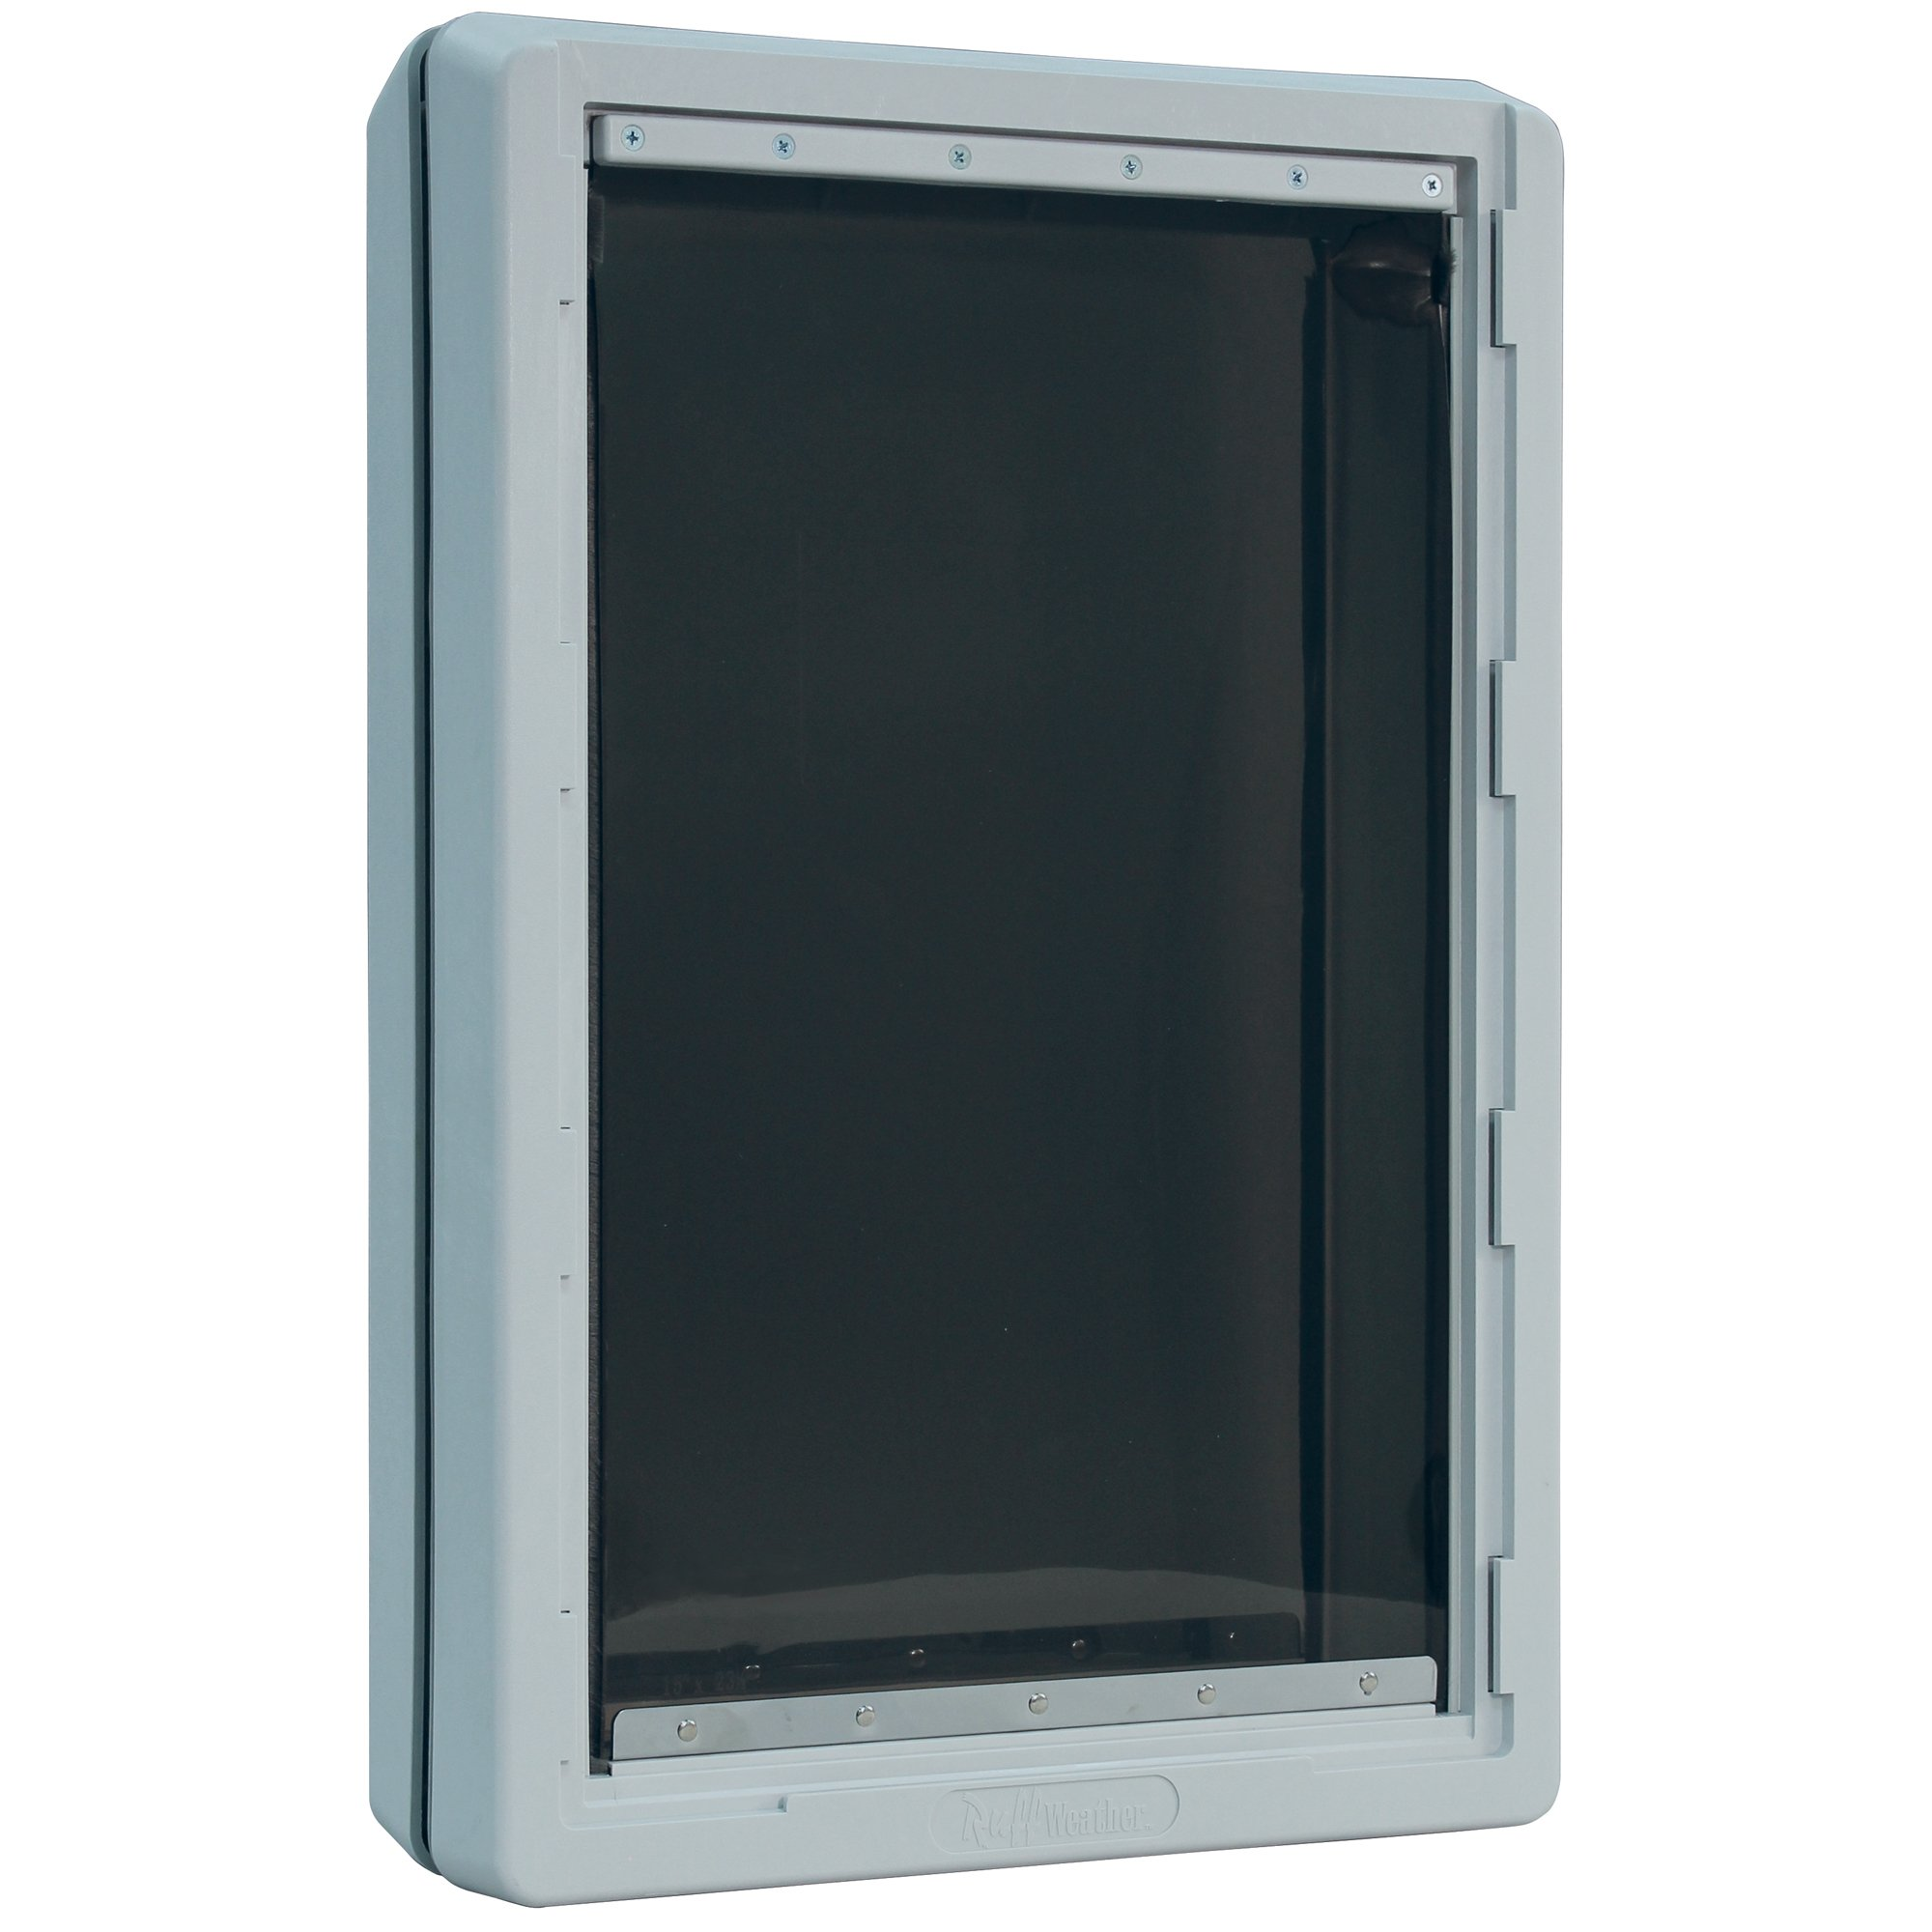 Ideal Pet Products Designer Series Ruff-Weather Pet Door with Telescoping Frame, Super Large, 15'' x 23.5'' Flap Size by Ideal Pet Products